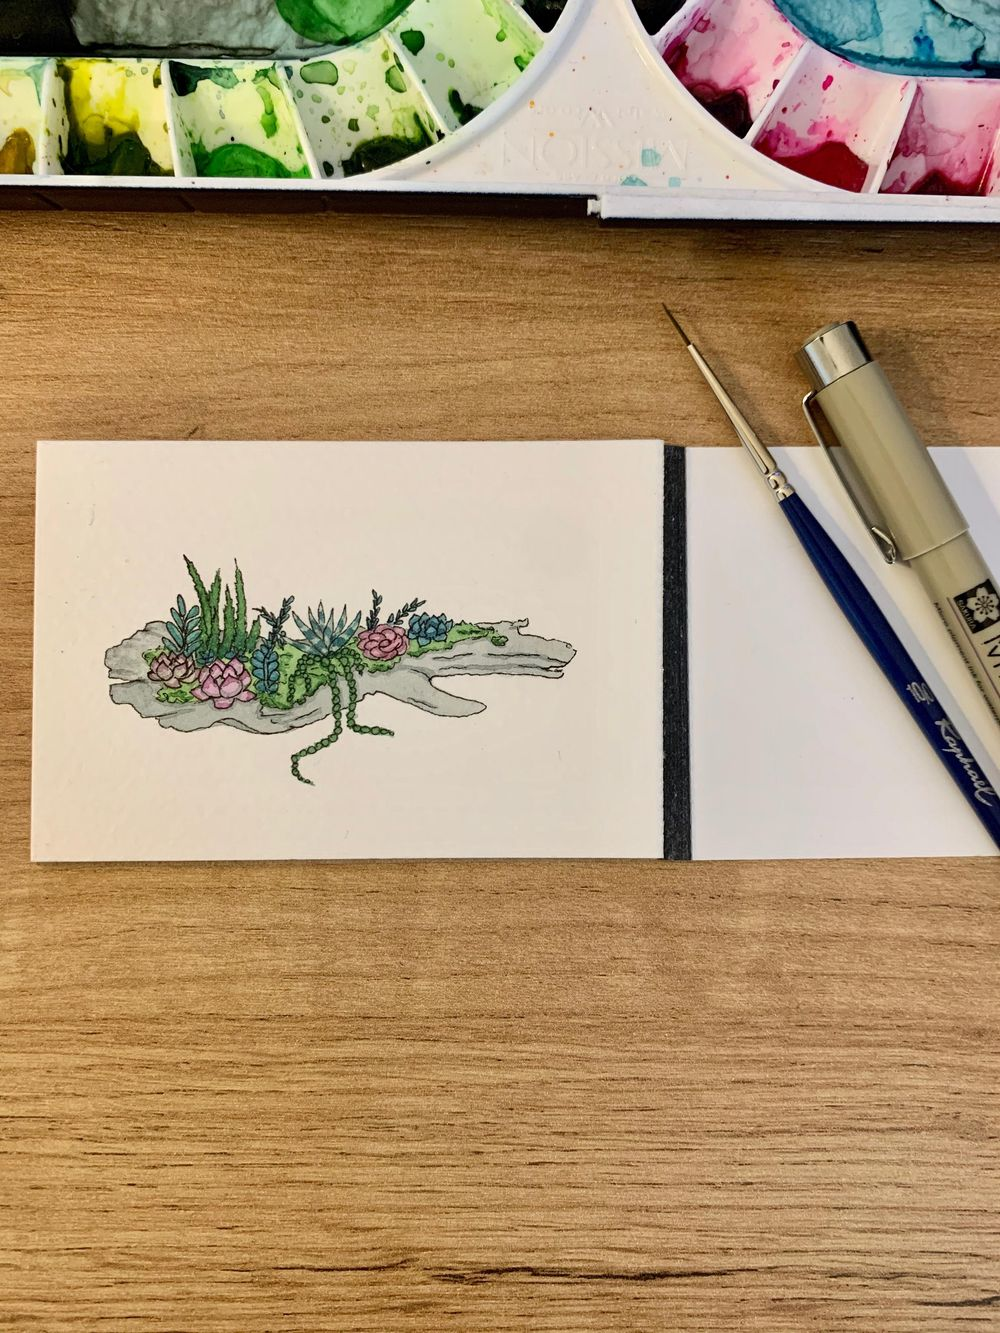 100 Days of Small Illustrations - Finished - image 11 - student project